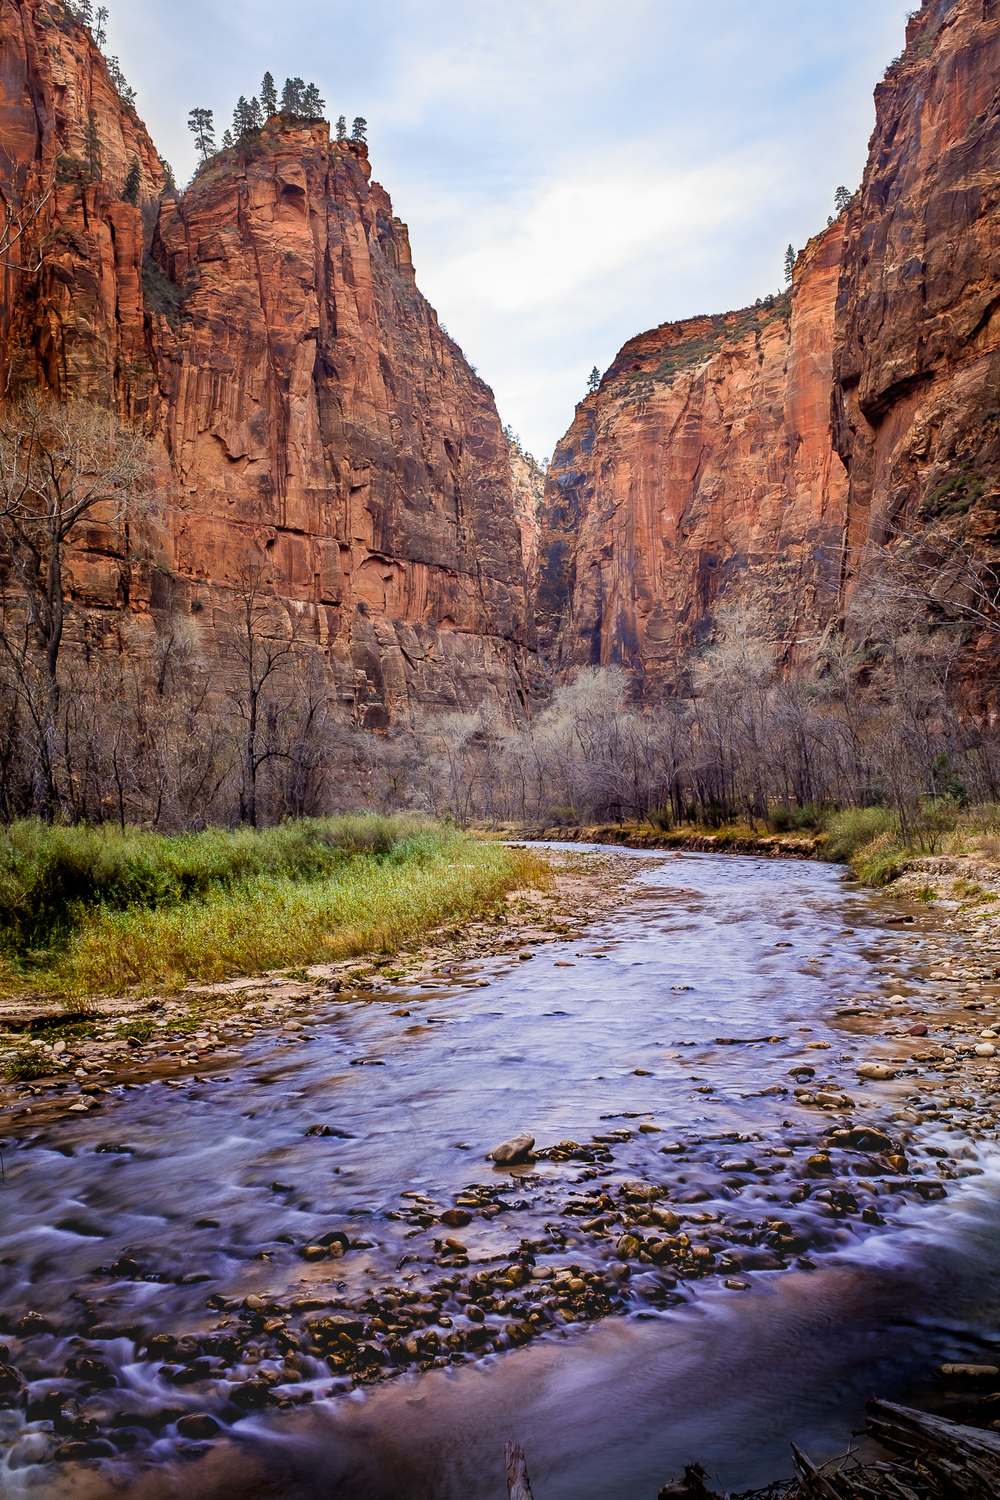 Filtered -   A gravel bar filters water as the Virgin River makes a bend in the Zion Valley. This is the only shot from this post that is not handheld. I mounted the camera to a tiny Ultra Pod II so I could slow the shutter down and capture the river's movement, the X100t's built in ND filter came in handy here.   [ Fujifilm X100t, f/11, 1/200s, ISO 200 ]